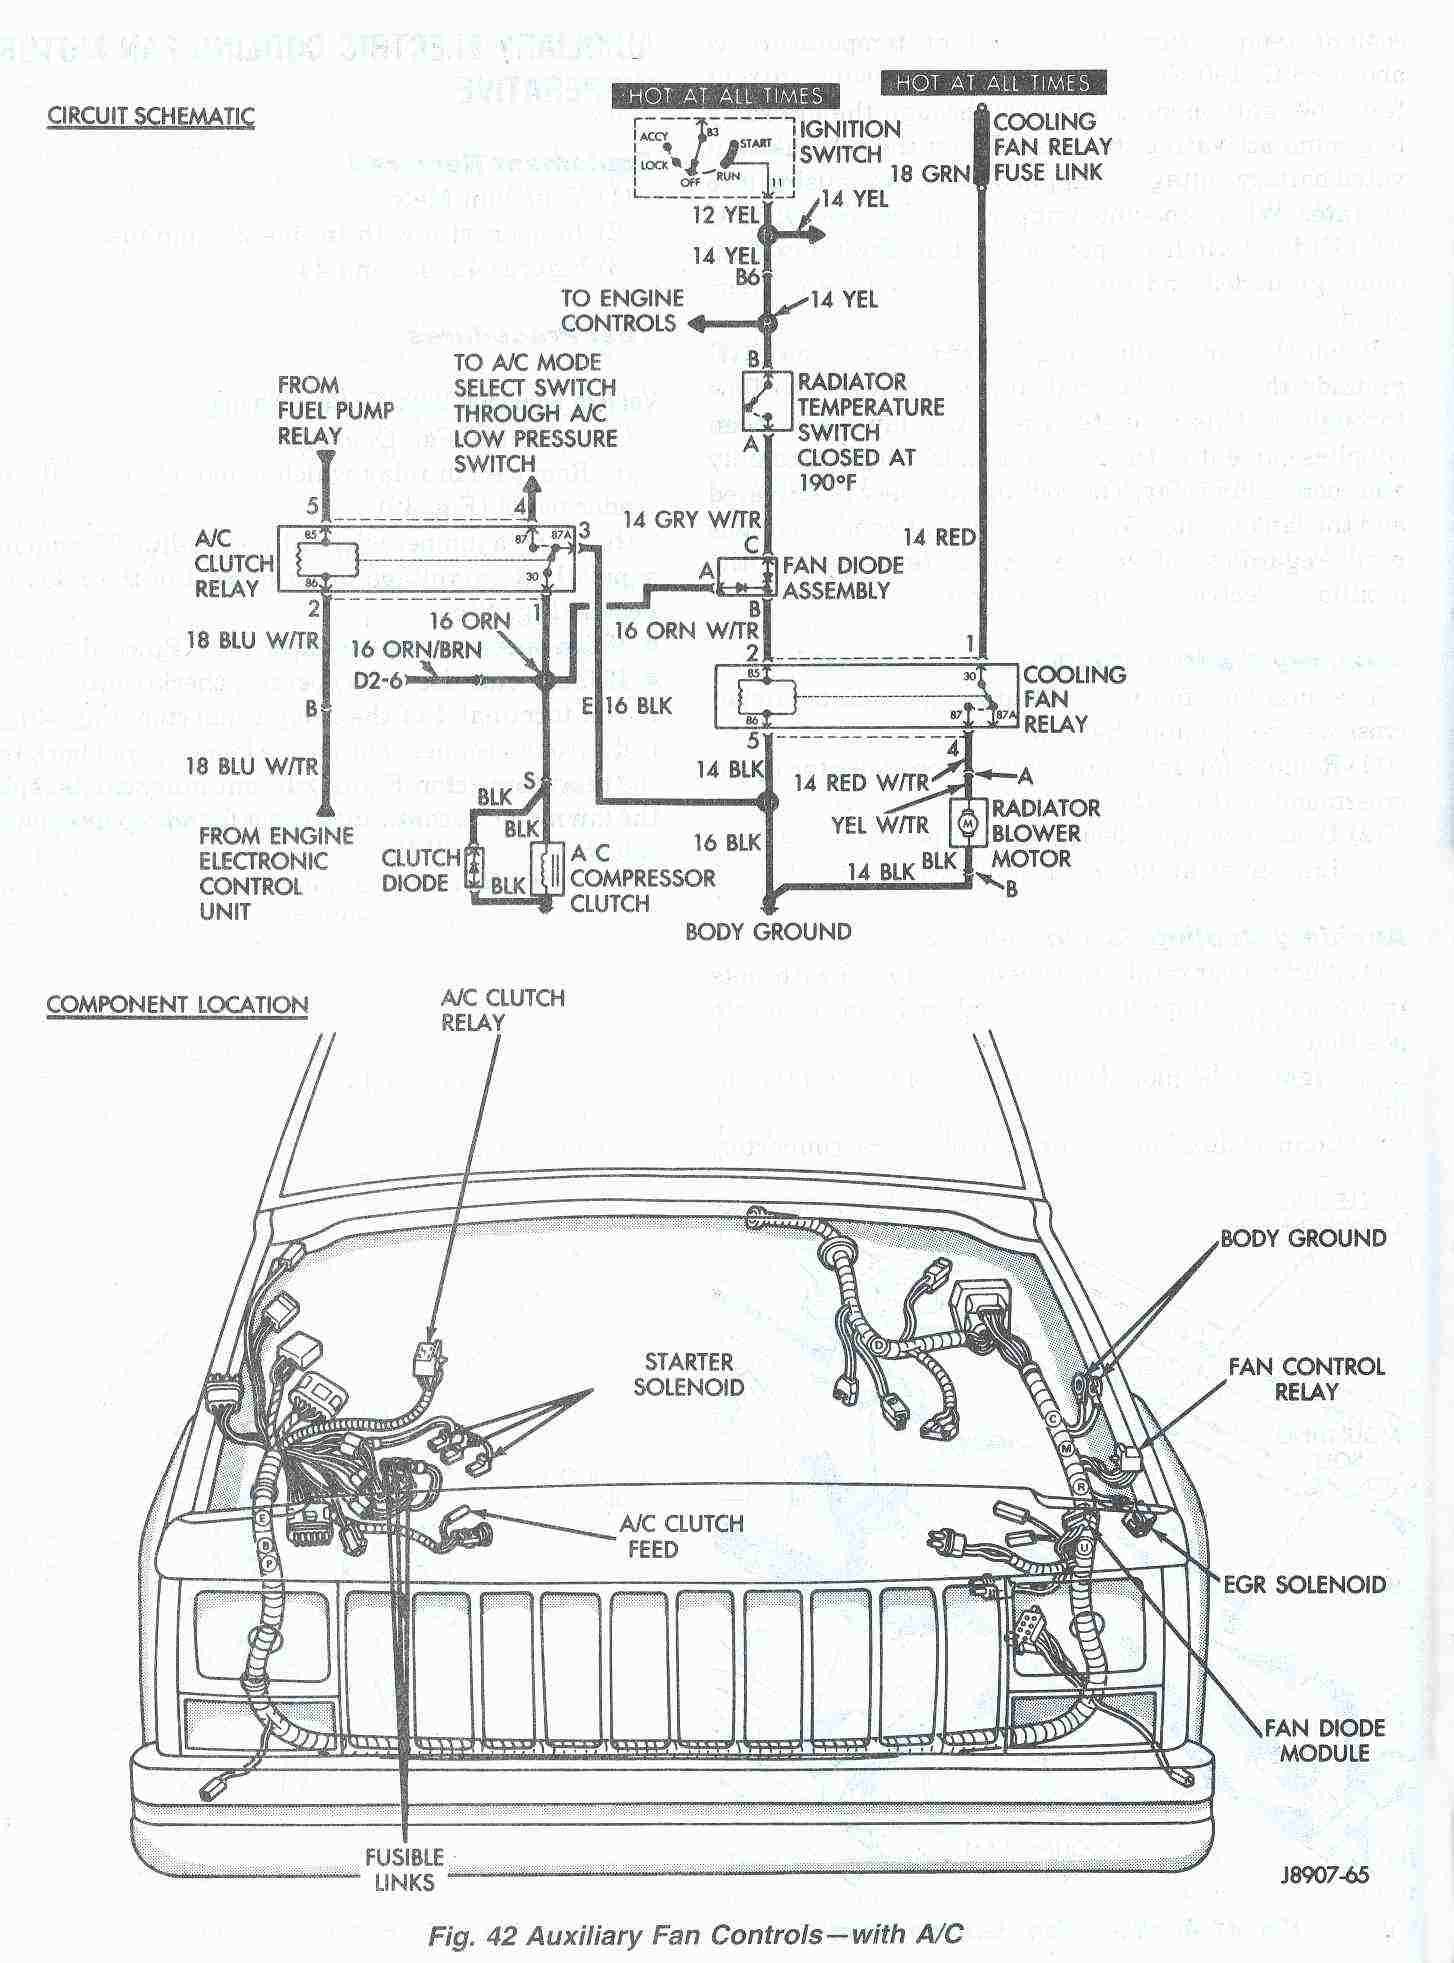 e8c83109bad6c41d377df8c1cb7a8dc4 auxiliary_fan_schematic_fig_42 jpg (1454�1963) cherokee diagrams 1997 jeep grand cherokee wiring schematic at gsmportal.co